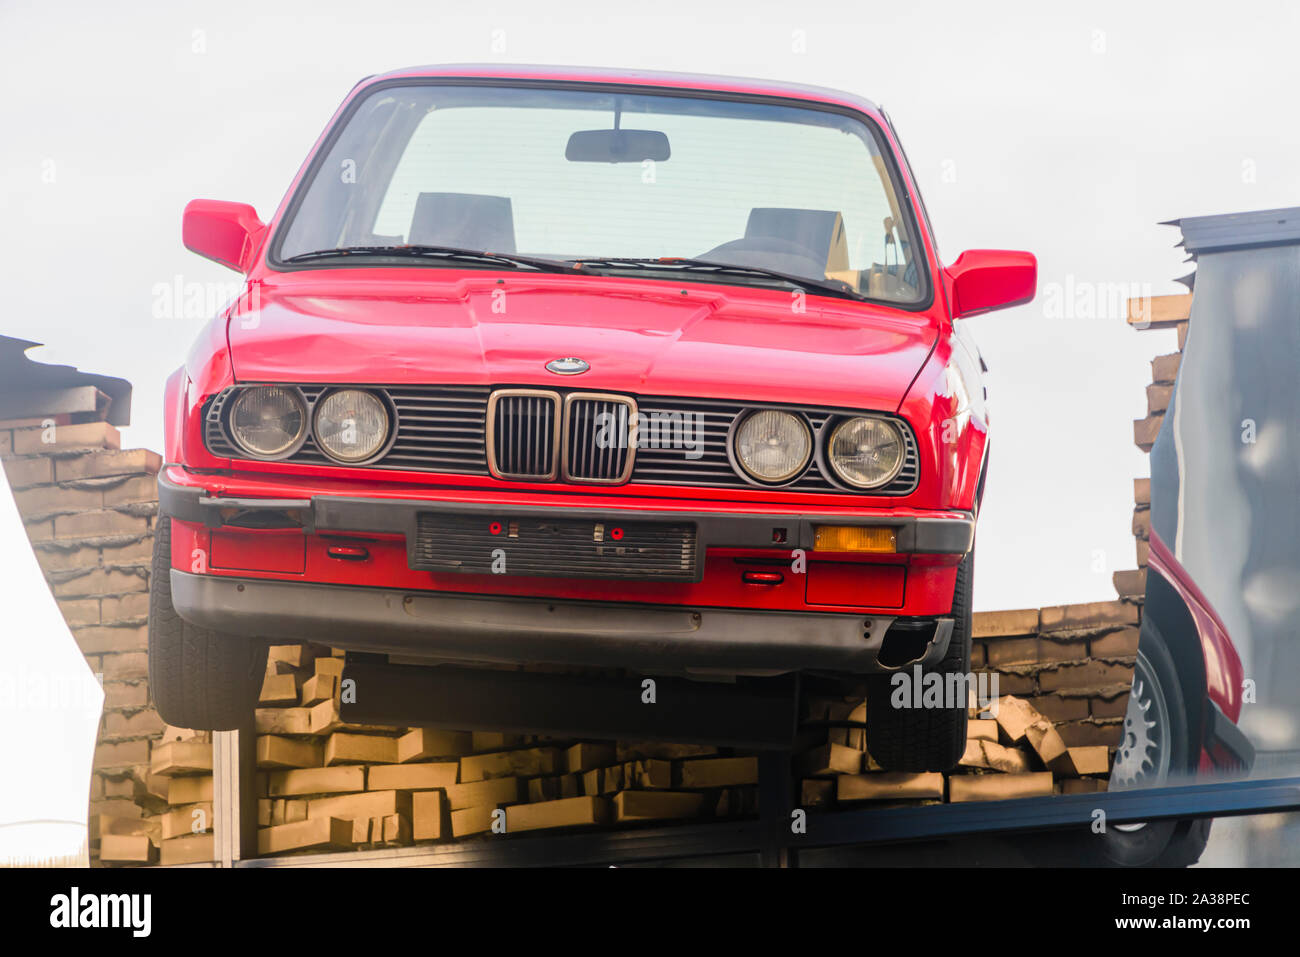 A red BMW car hangs precariously off the roof of a building, as if it had just broken through as the result of an accident, Rotterdam, Netherlands. Stock Photo